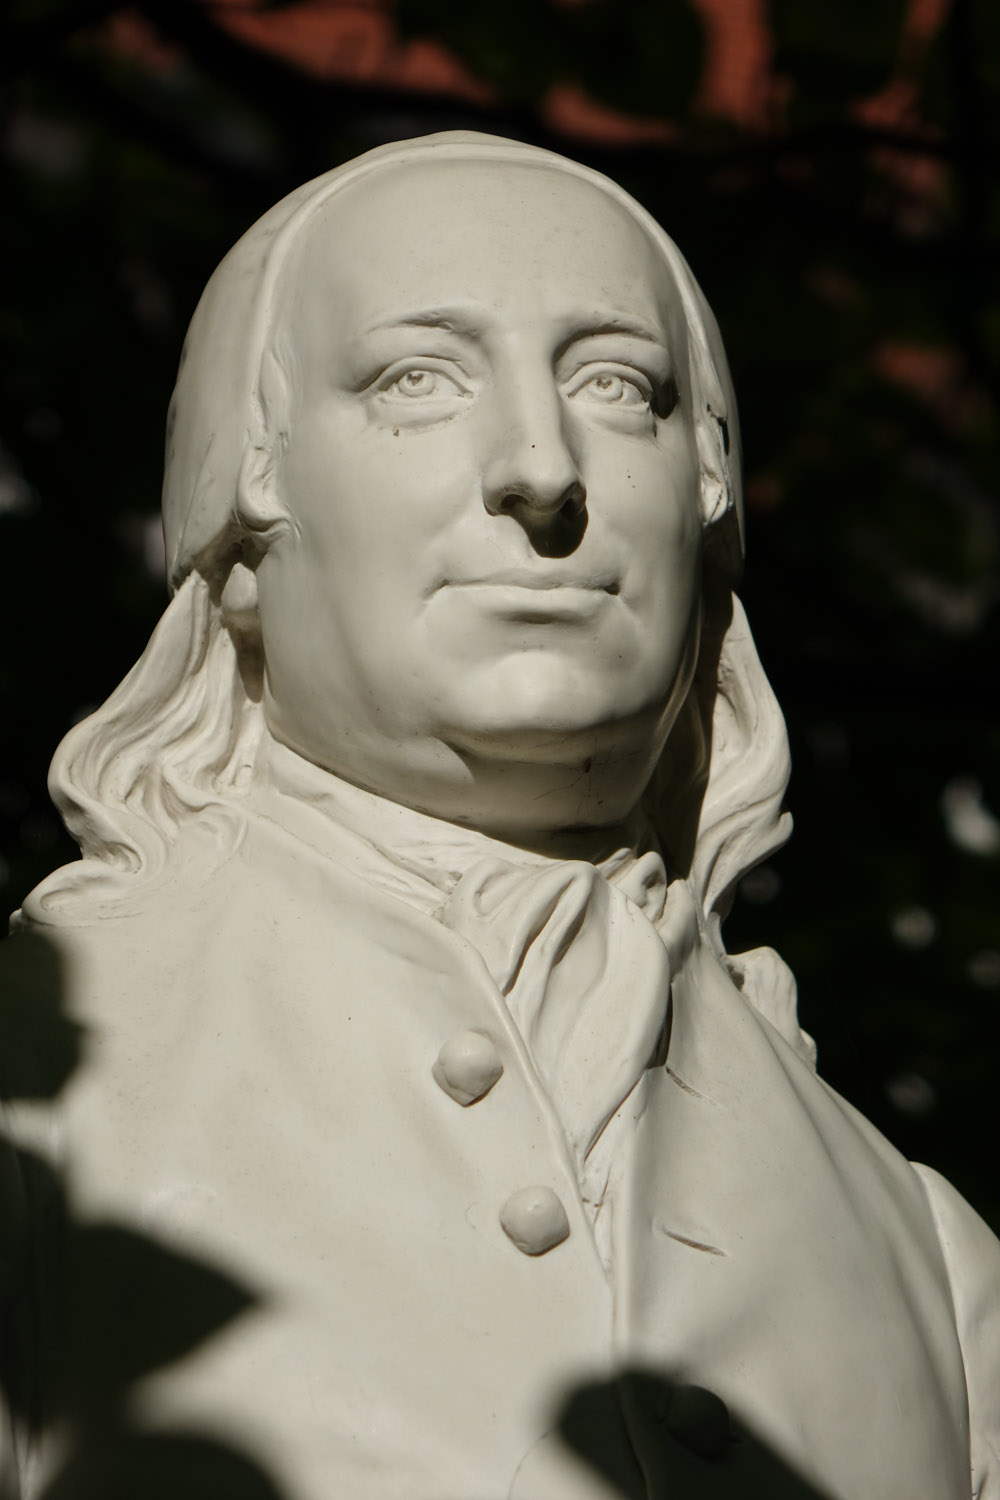 An image of a bust of Count Zinzendorf in Herrnhut, Germany | Photo by Mike Riess / IBOC